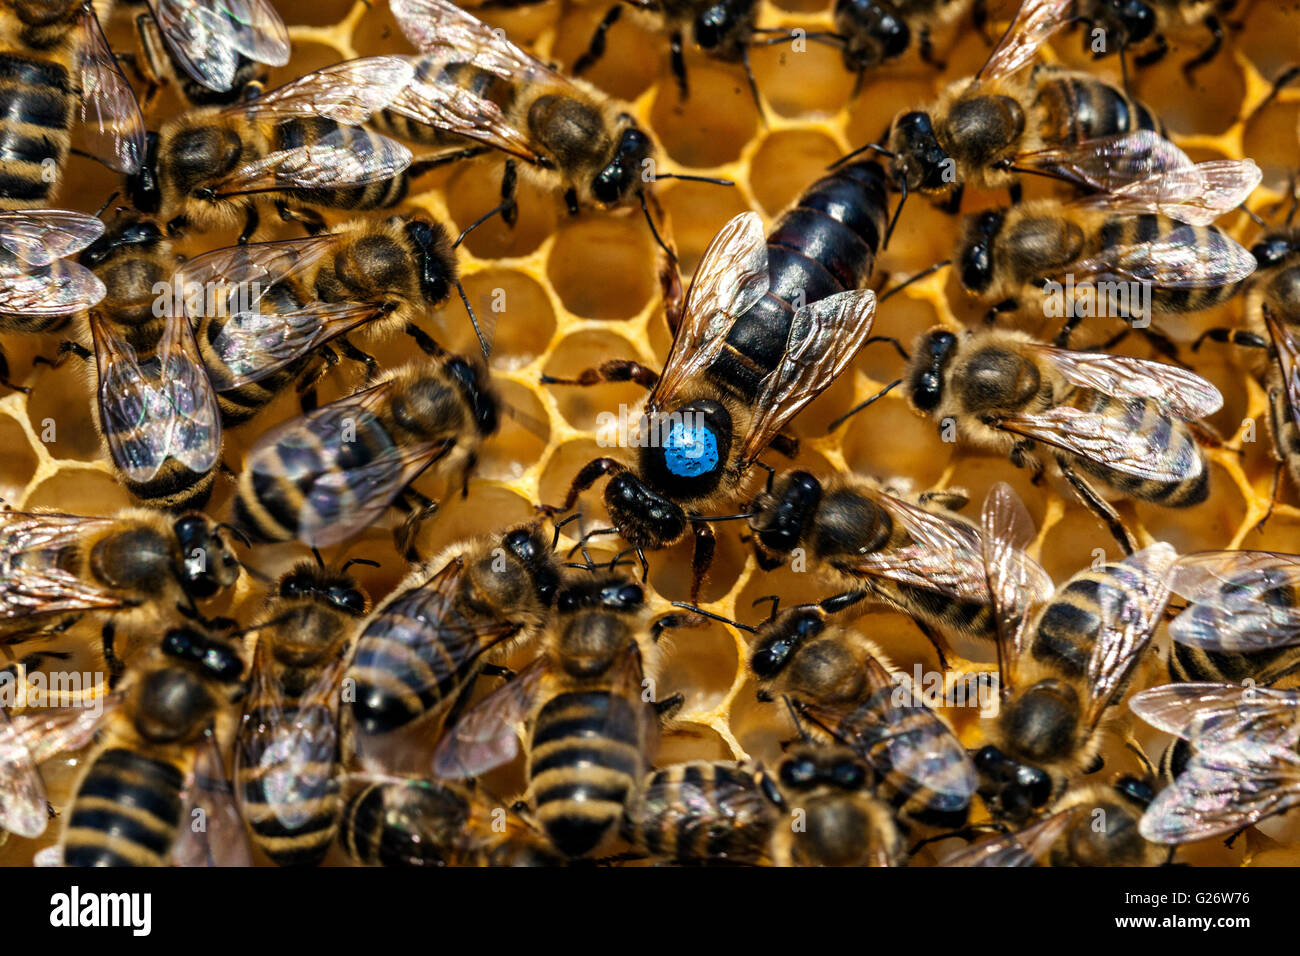 Queen bee, marked and surrounded by worker bees - Stock Image